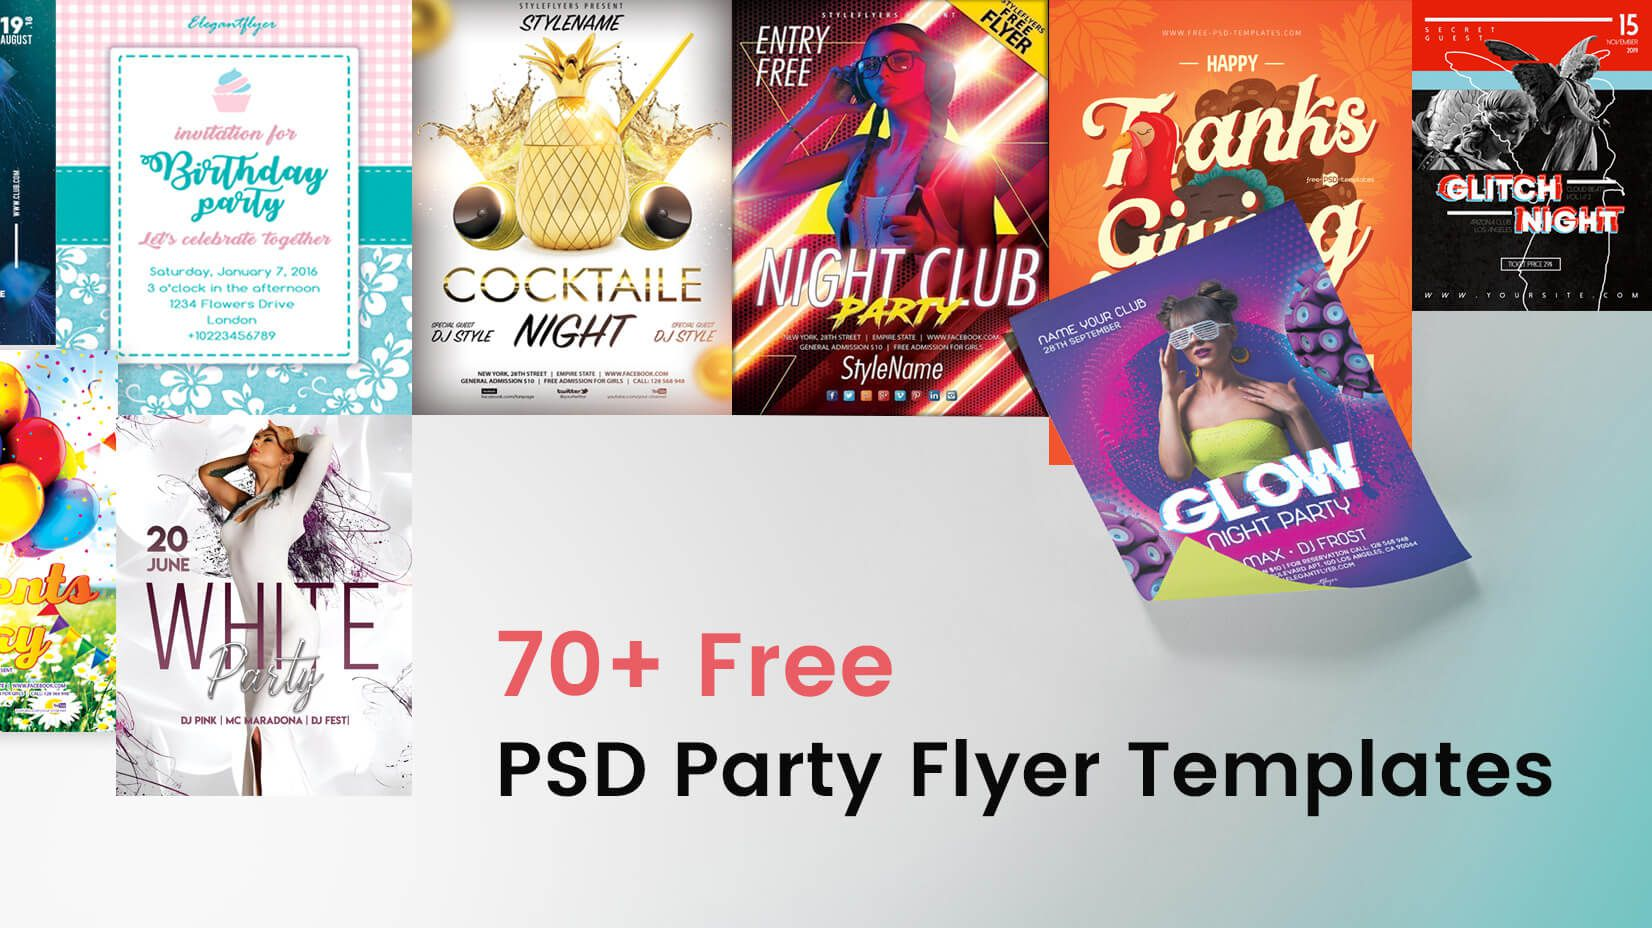 010 Breathtaking Party Event Flyer Template Free Download Concept Full